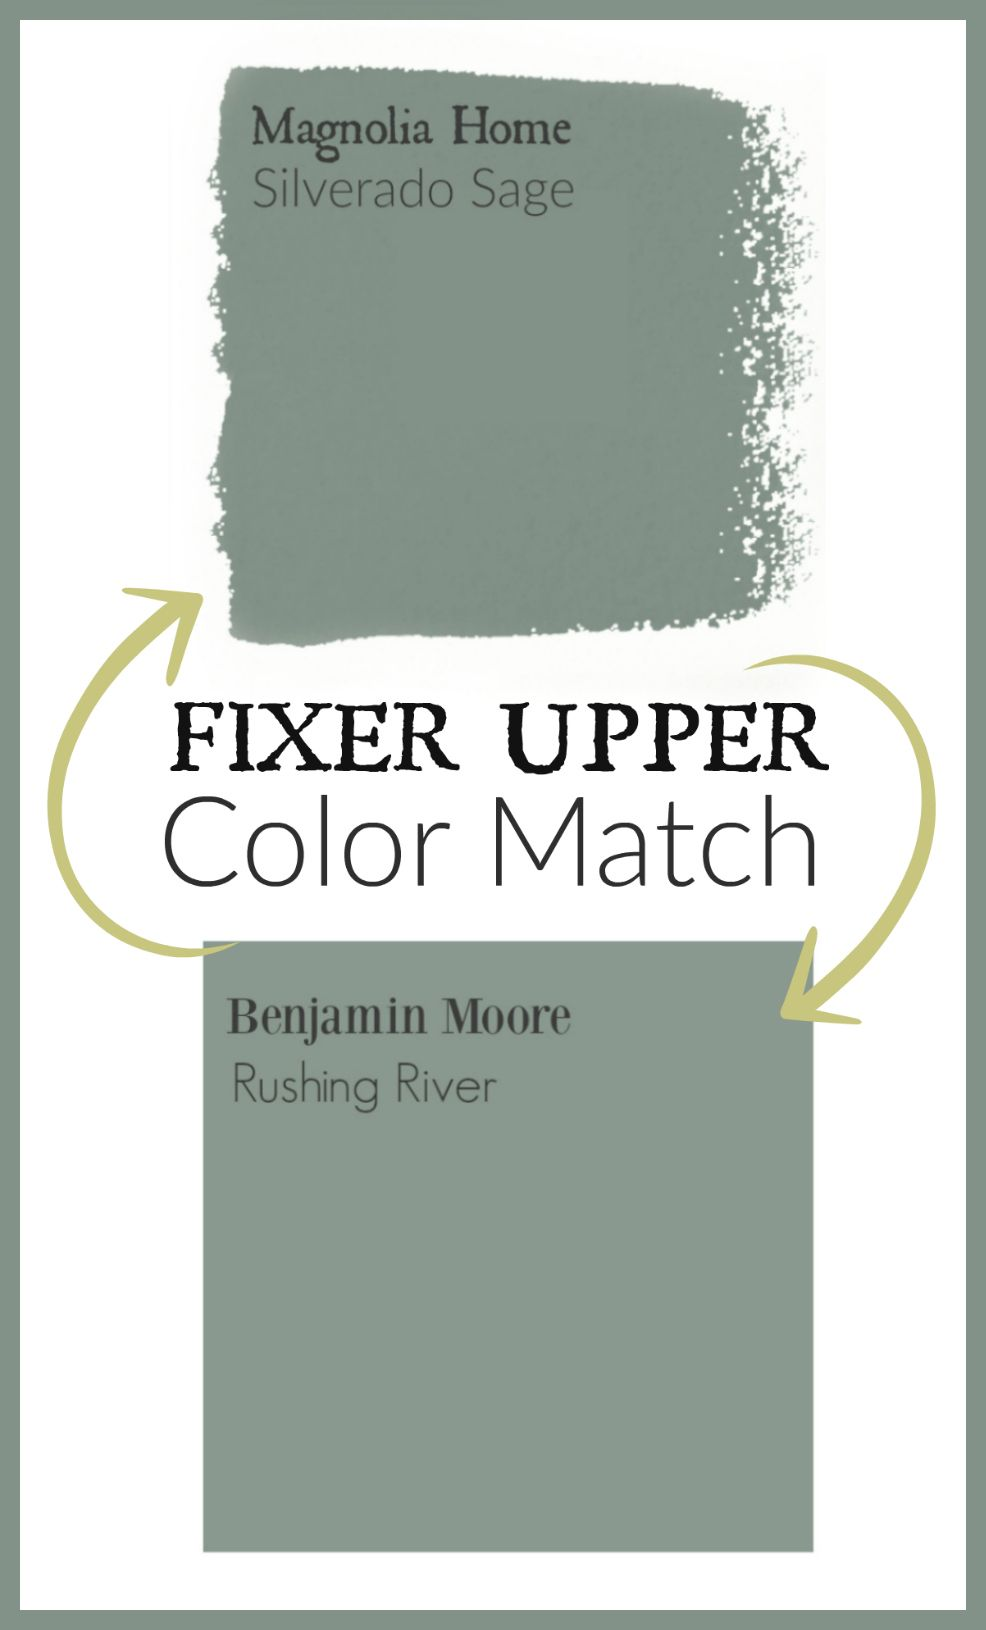 Fixer Upper Paint Colors Color Matched | Rund ums haus, Runde und ...